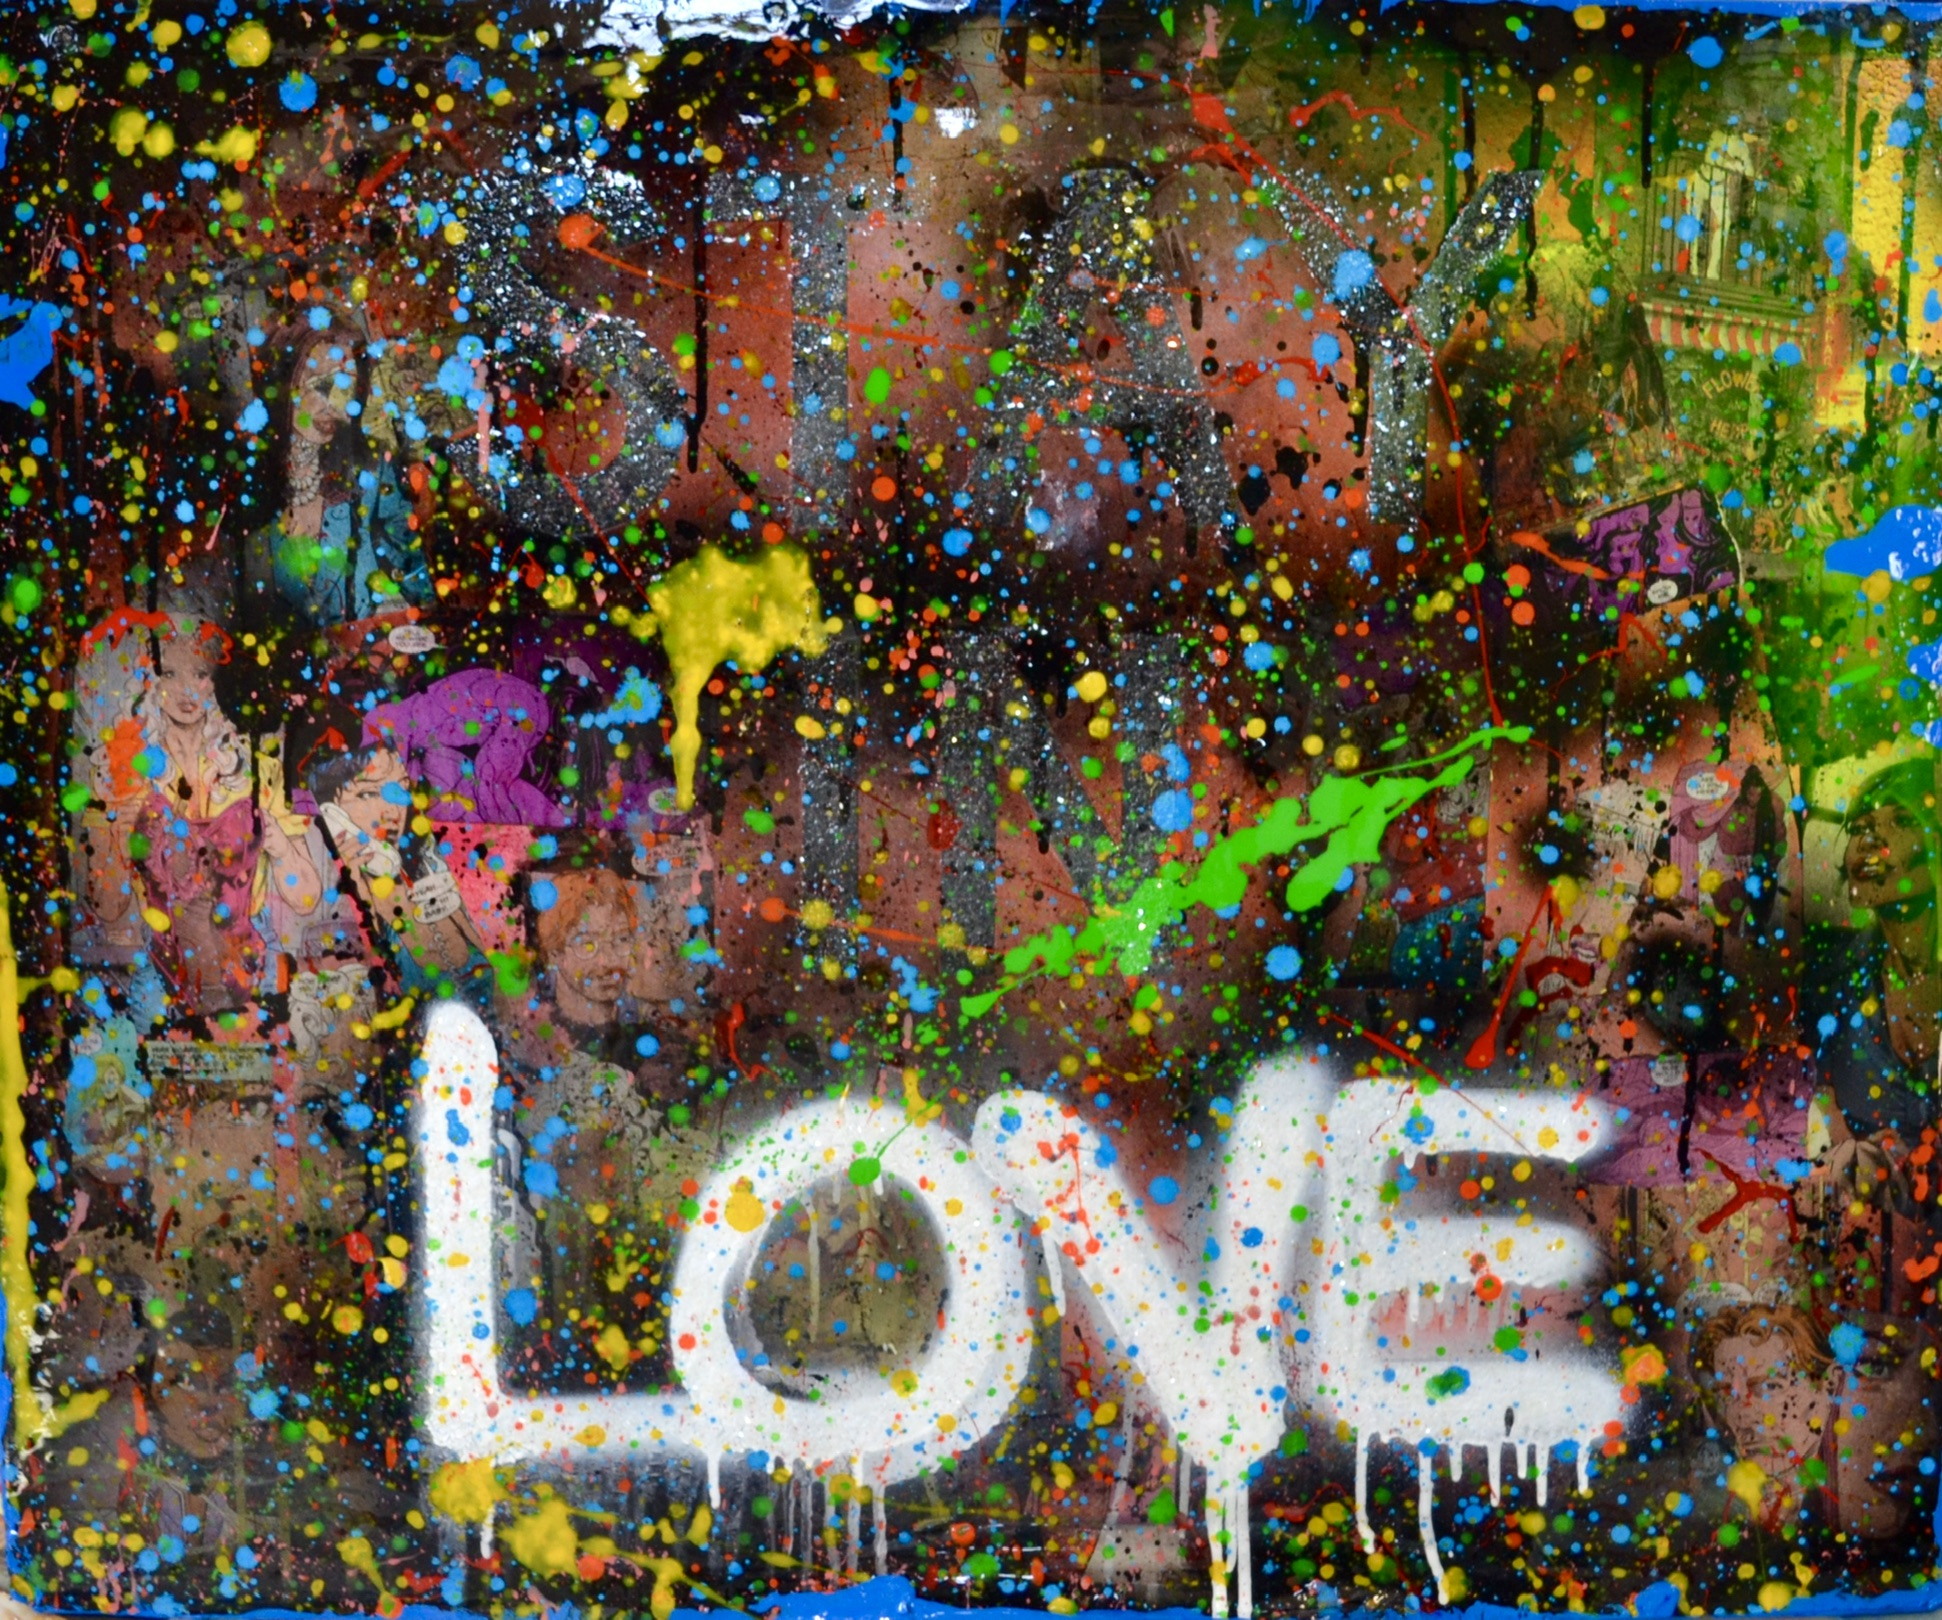 Stay In Love mixed media painting by Lamar Jones